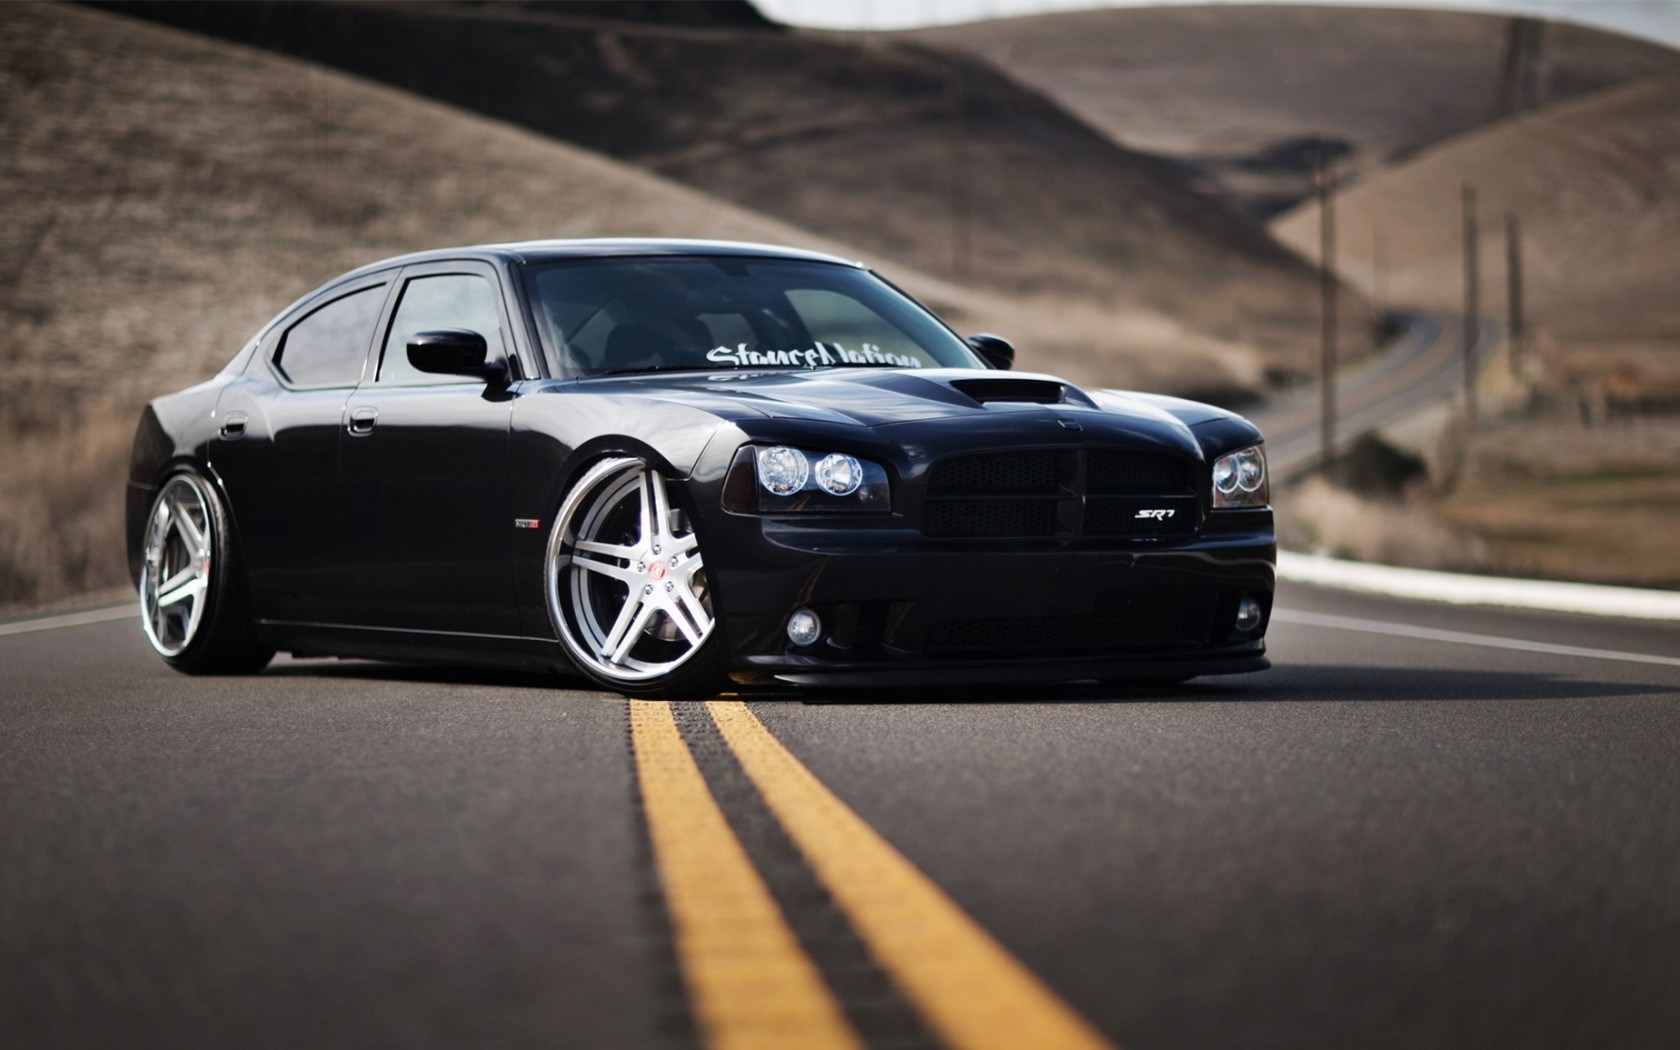 Dodge Charger Srt8 Black Car Tuning Wallpaper 1680x1050